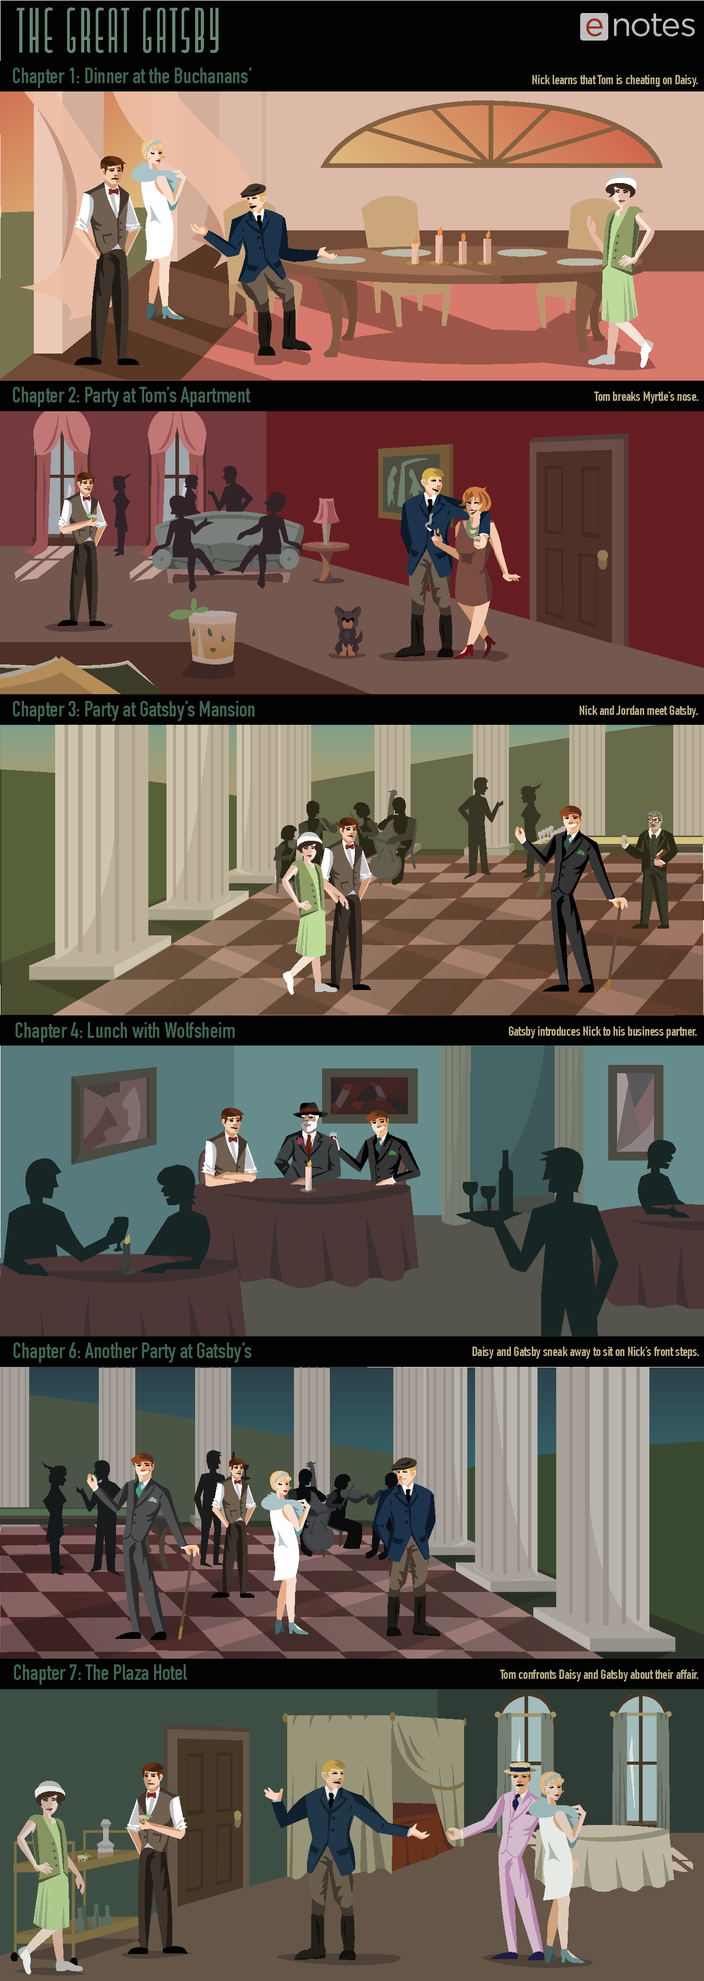 the great gatsby enotes premium jazz age infographics preview image 3